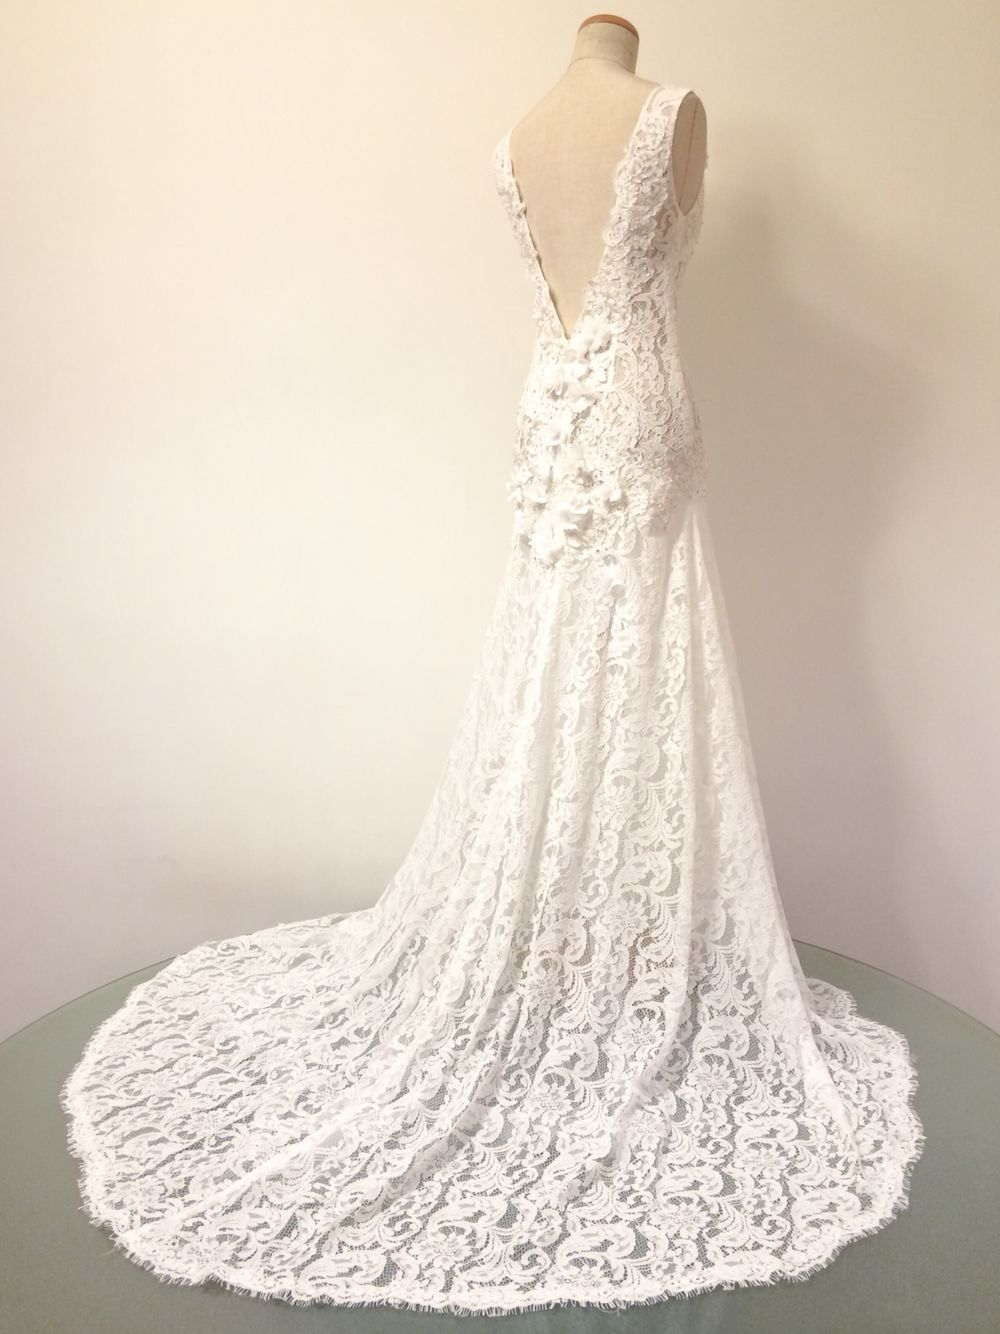 Full lace wedding dress with low v back details by victor chan